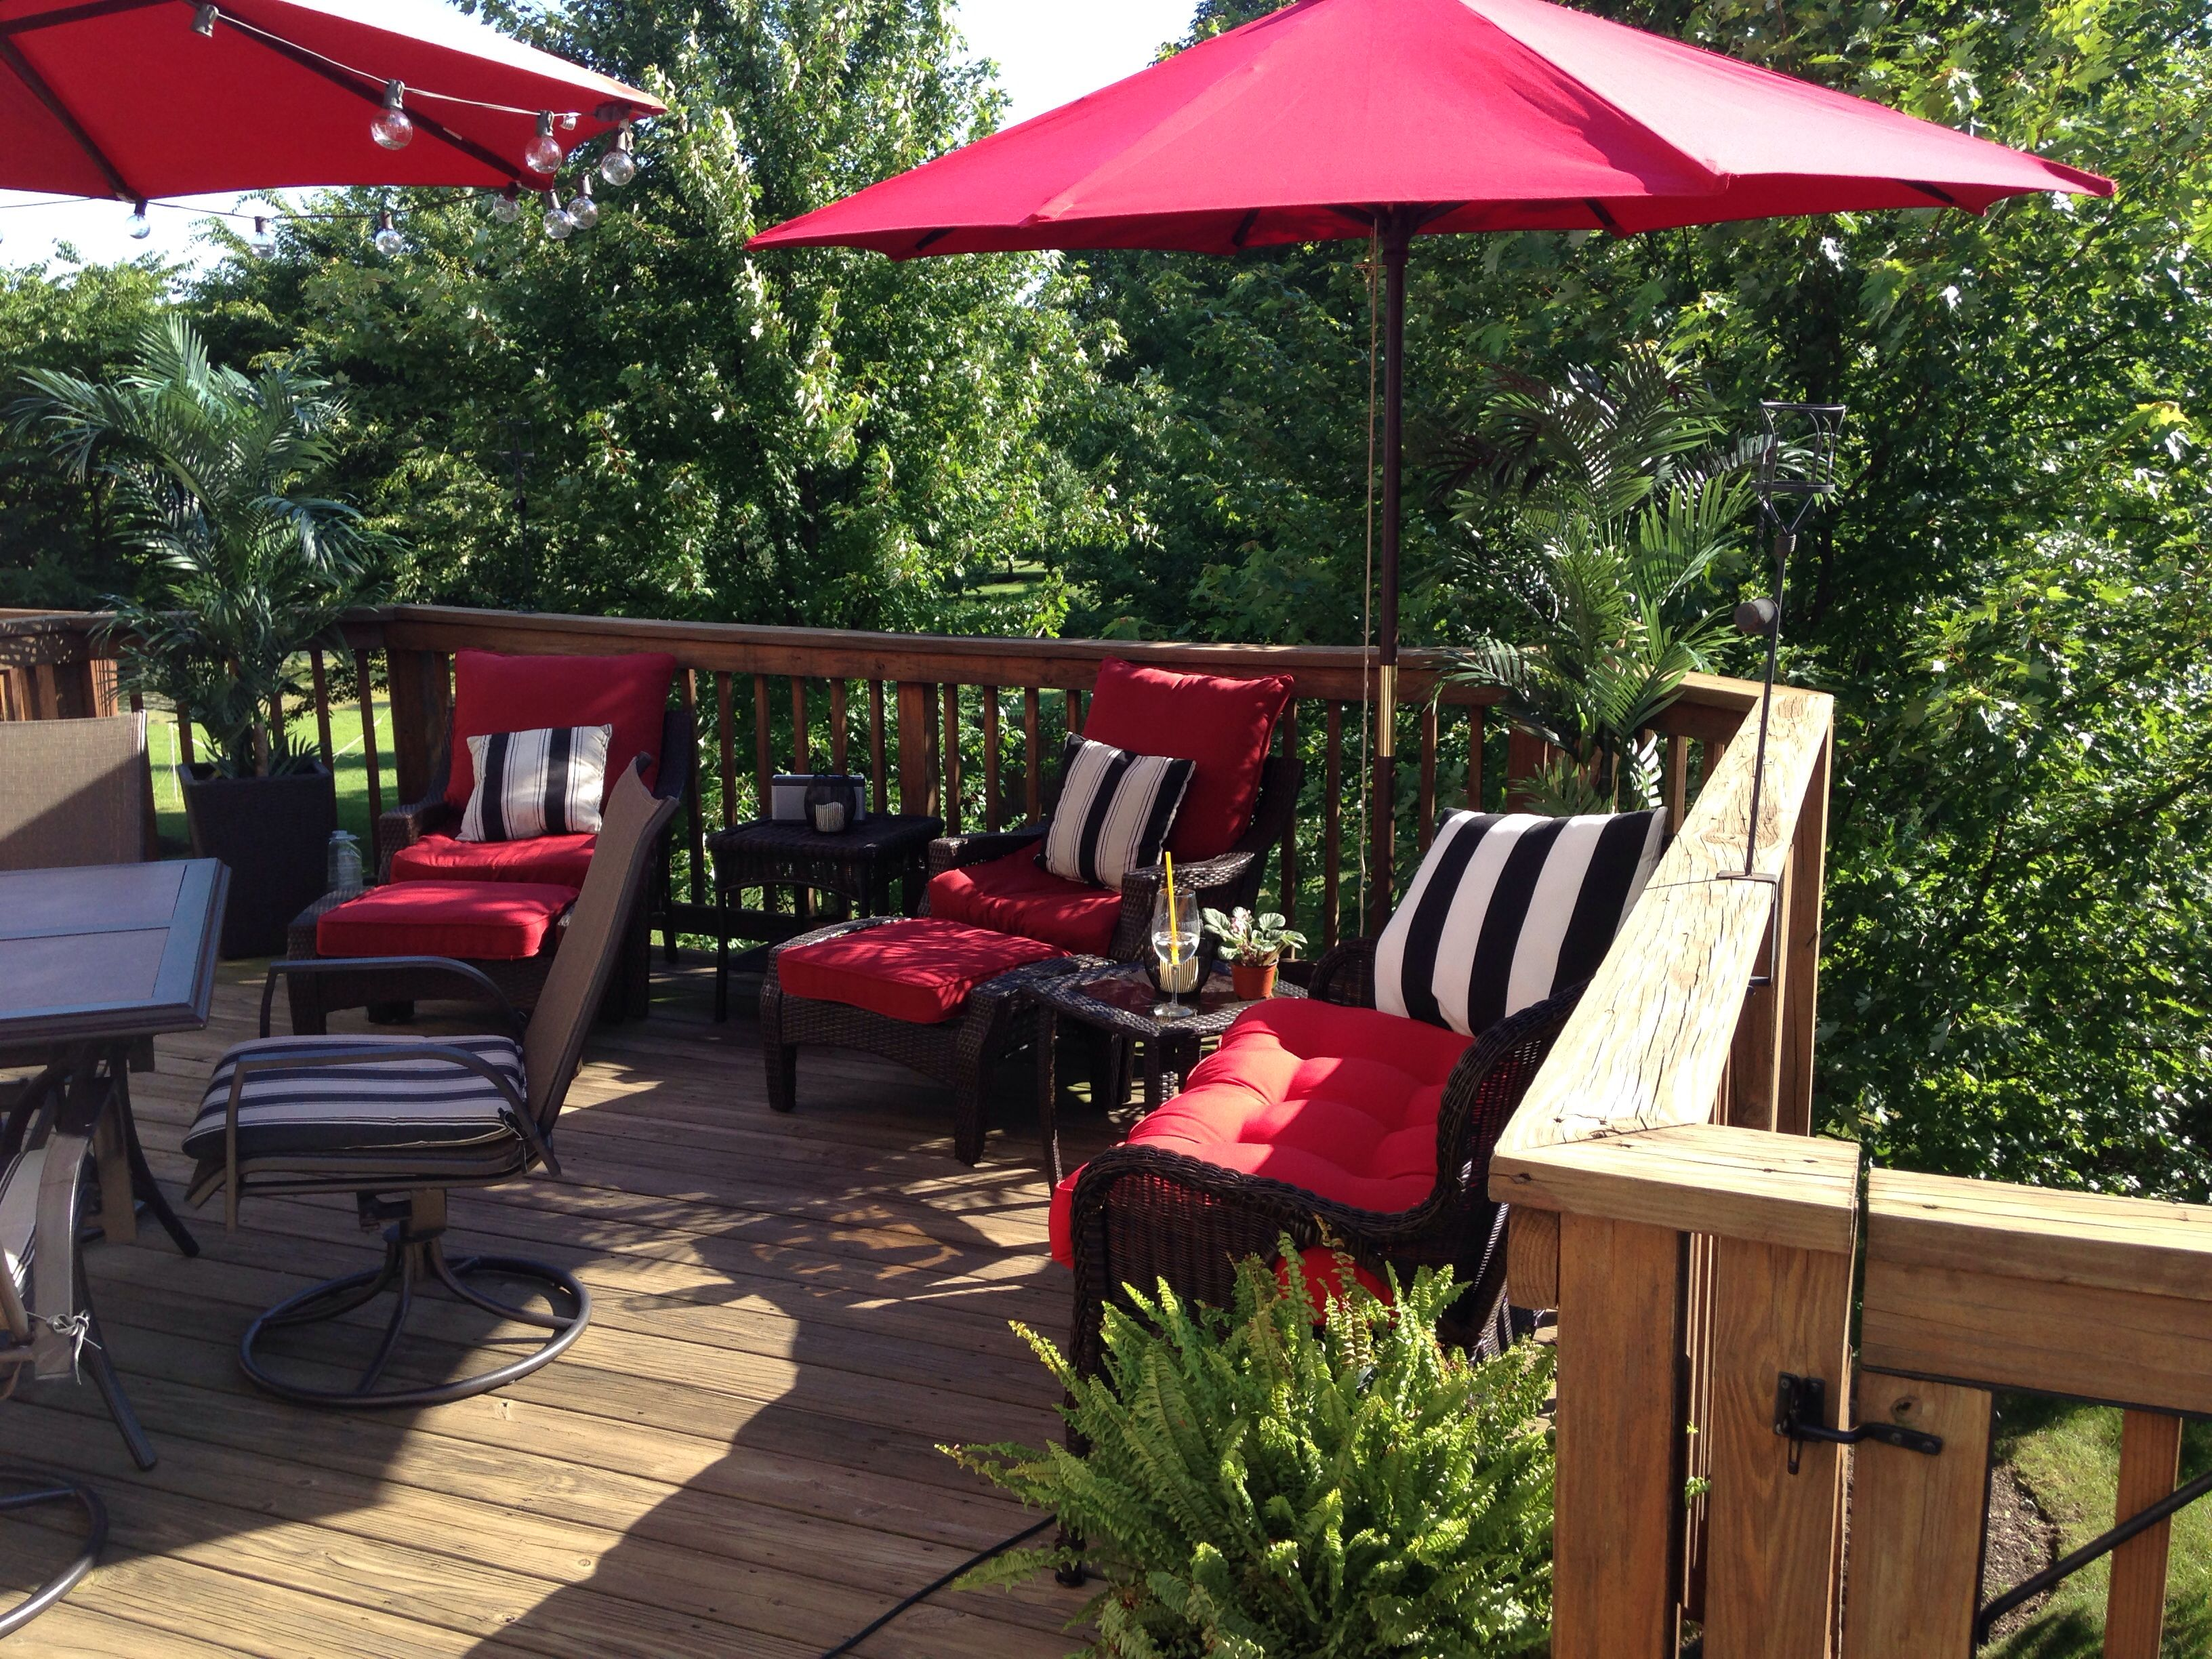 Red Patio Furniture Cushions With Black And White Striped